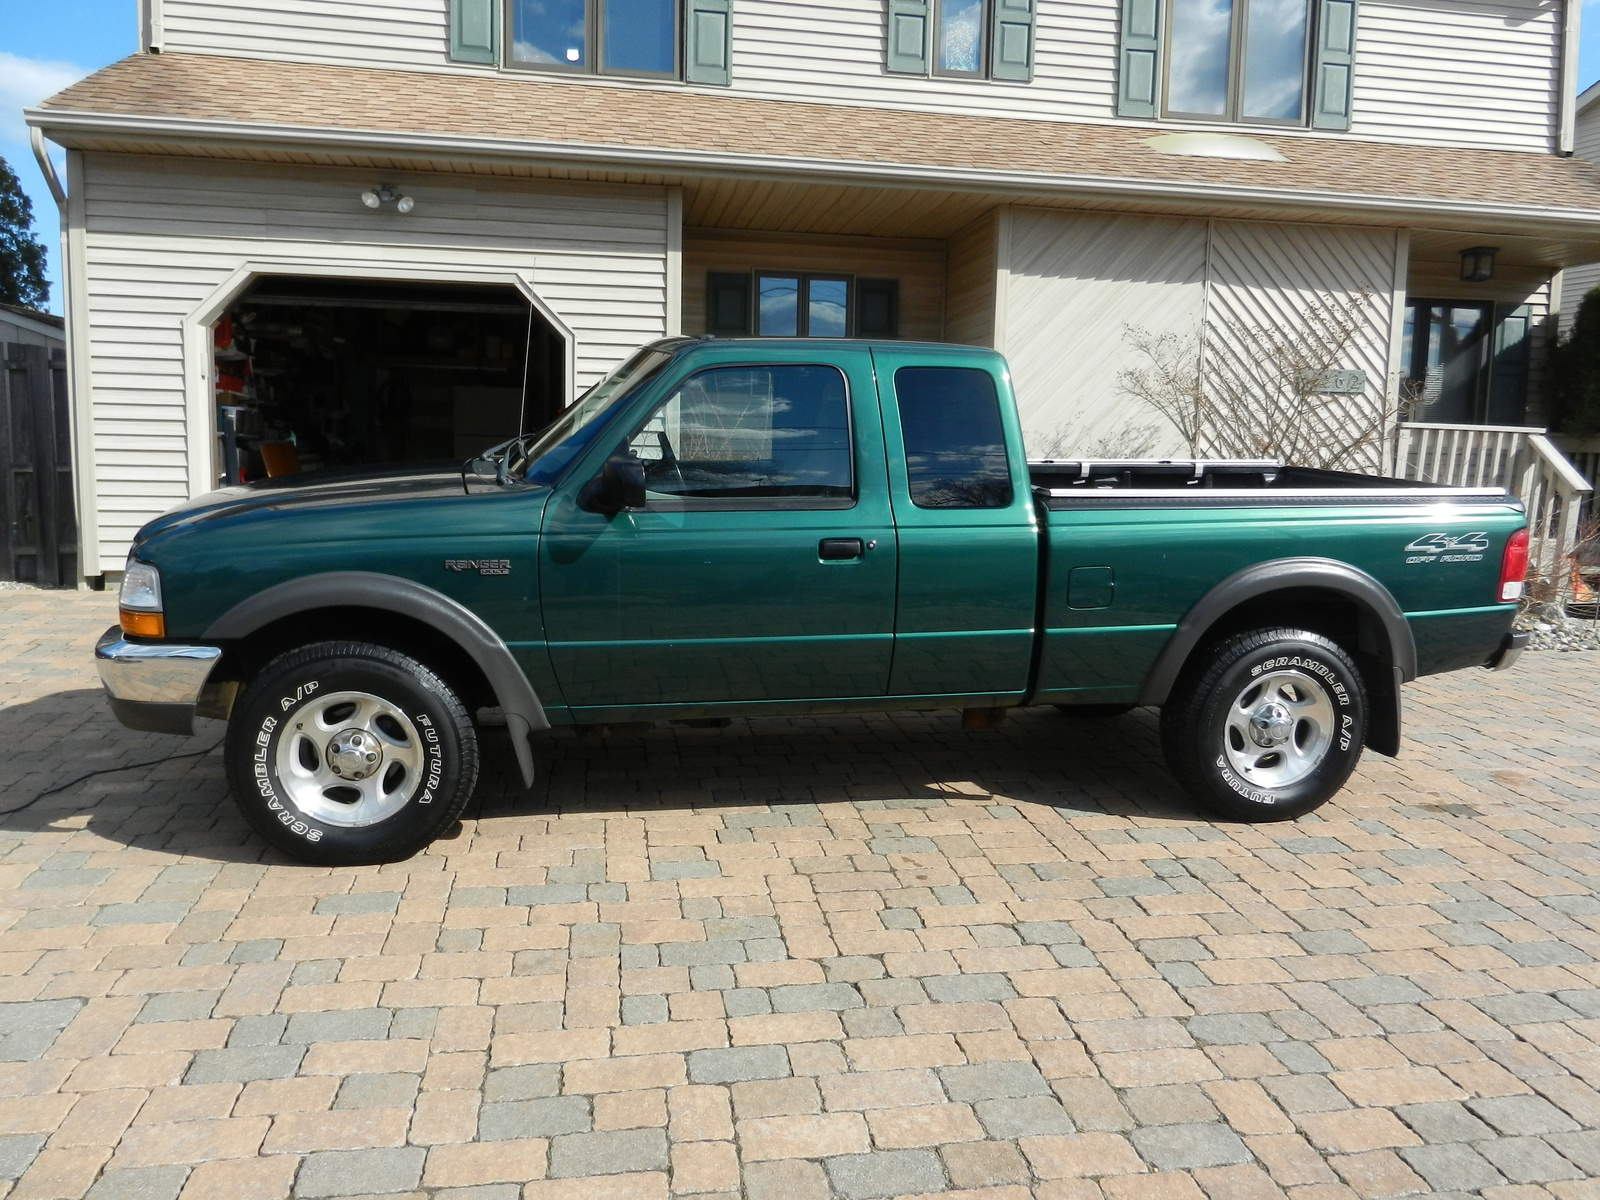 sb picture of 2000 ford ranger 2 dr xlt 4wd extended cab. Black Bedroom Furniture Sets. Home Design Ideas